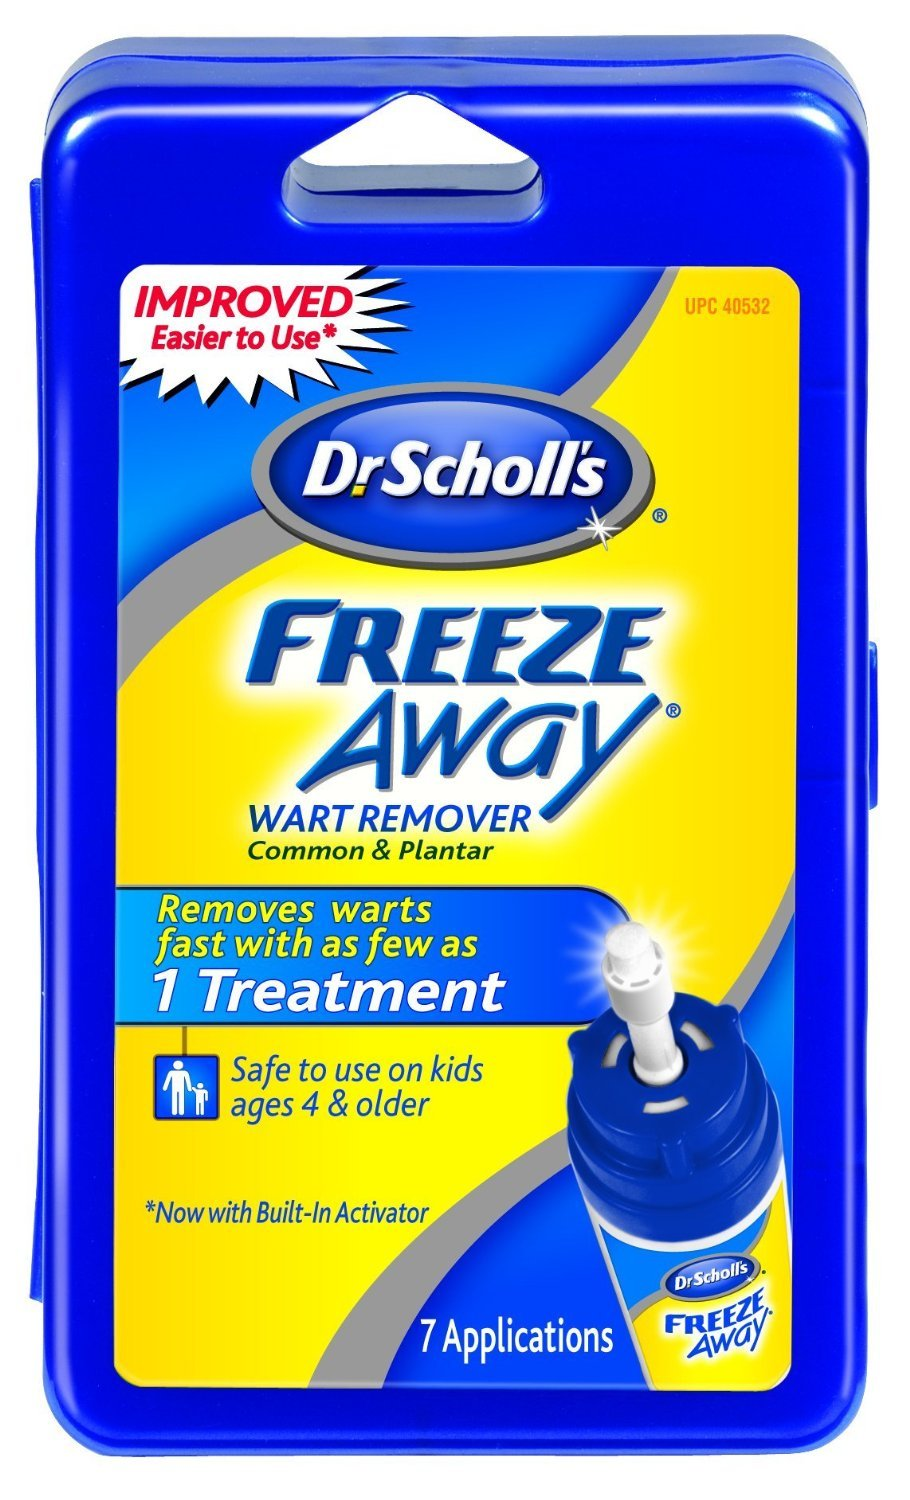 Dr. Scholl's Freeze Away Wart Remover, 7 Treatments, Box , Pack of 4 by Dr. Scholl's